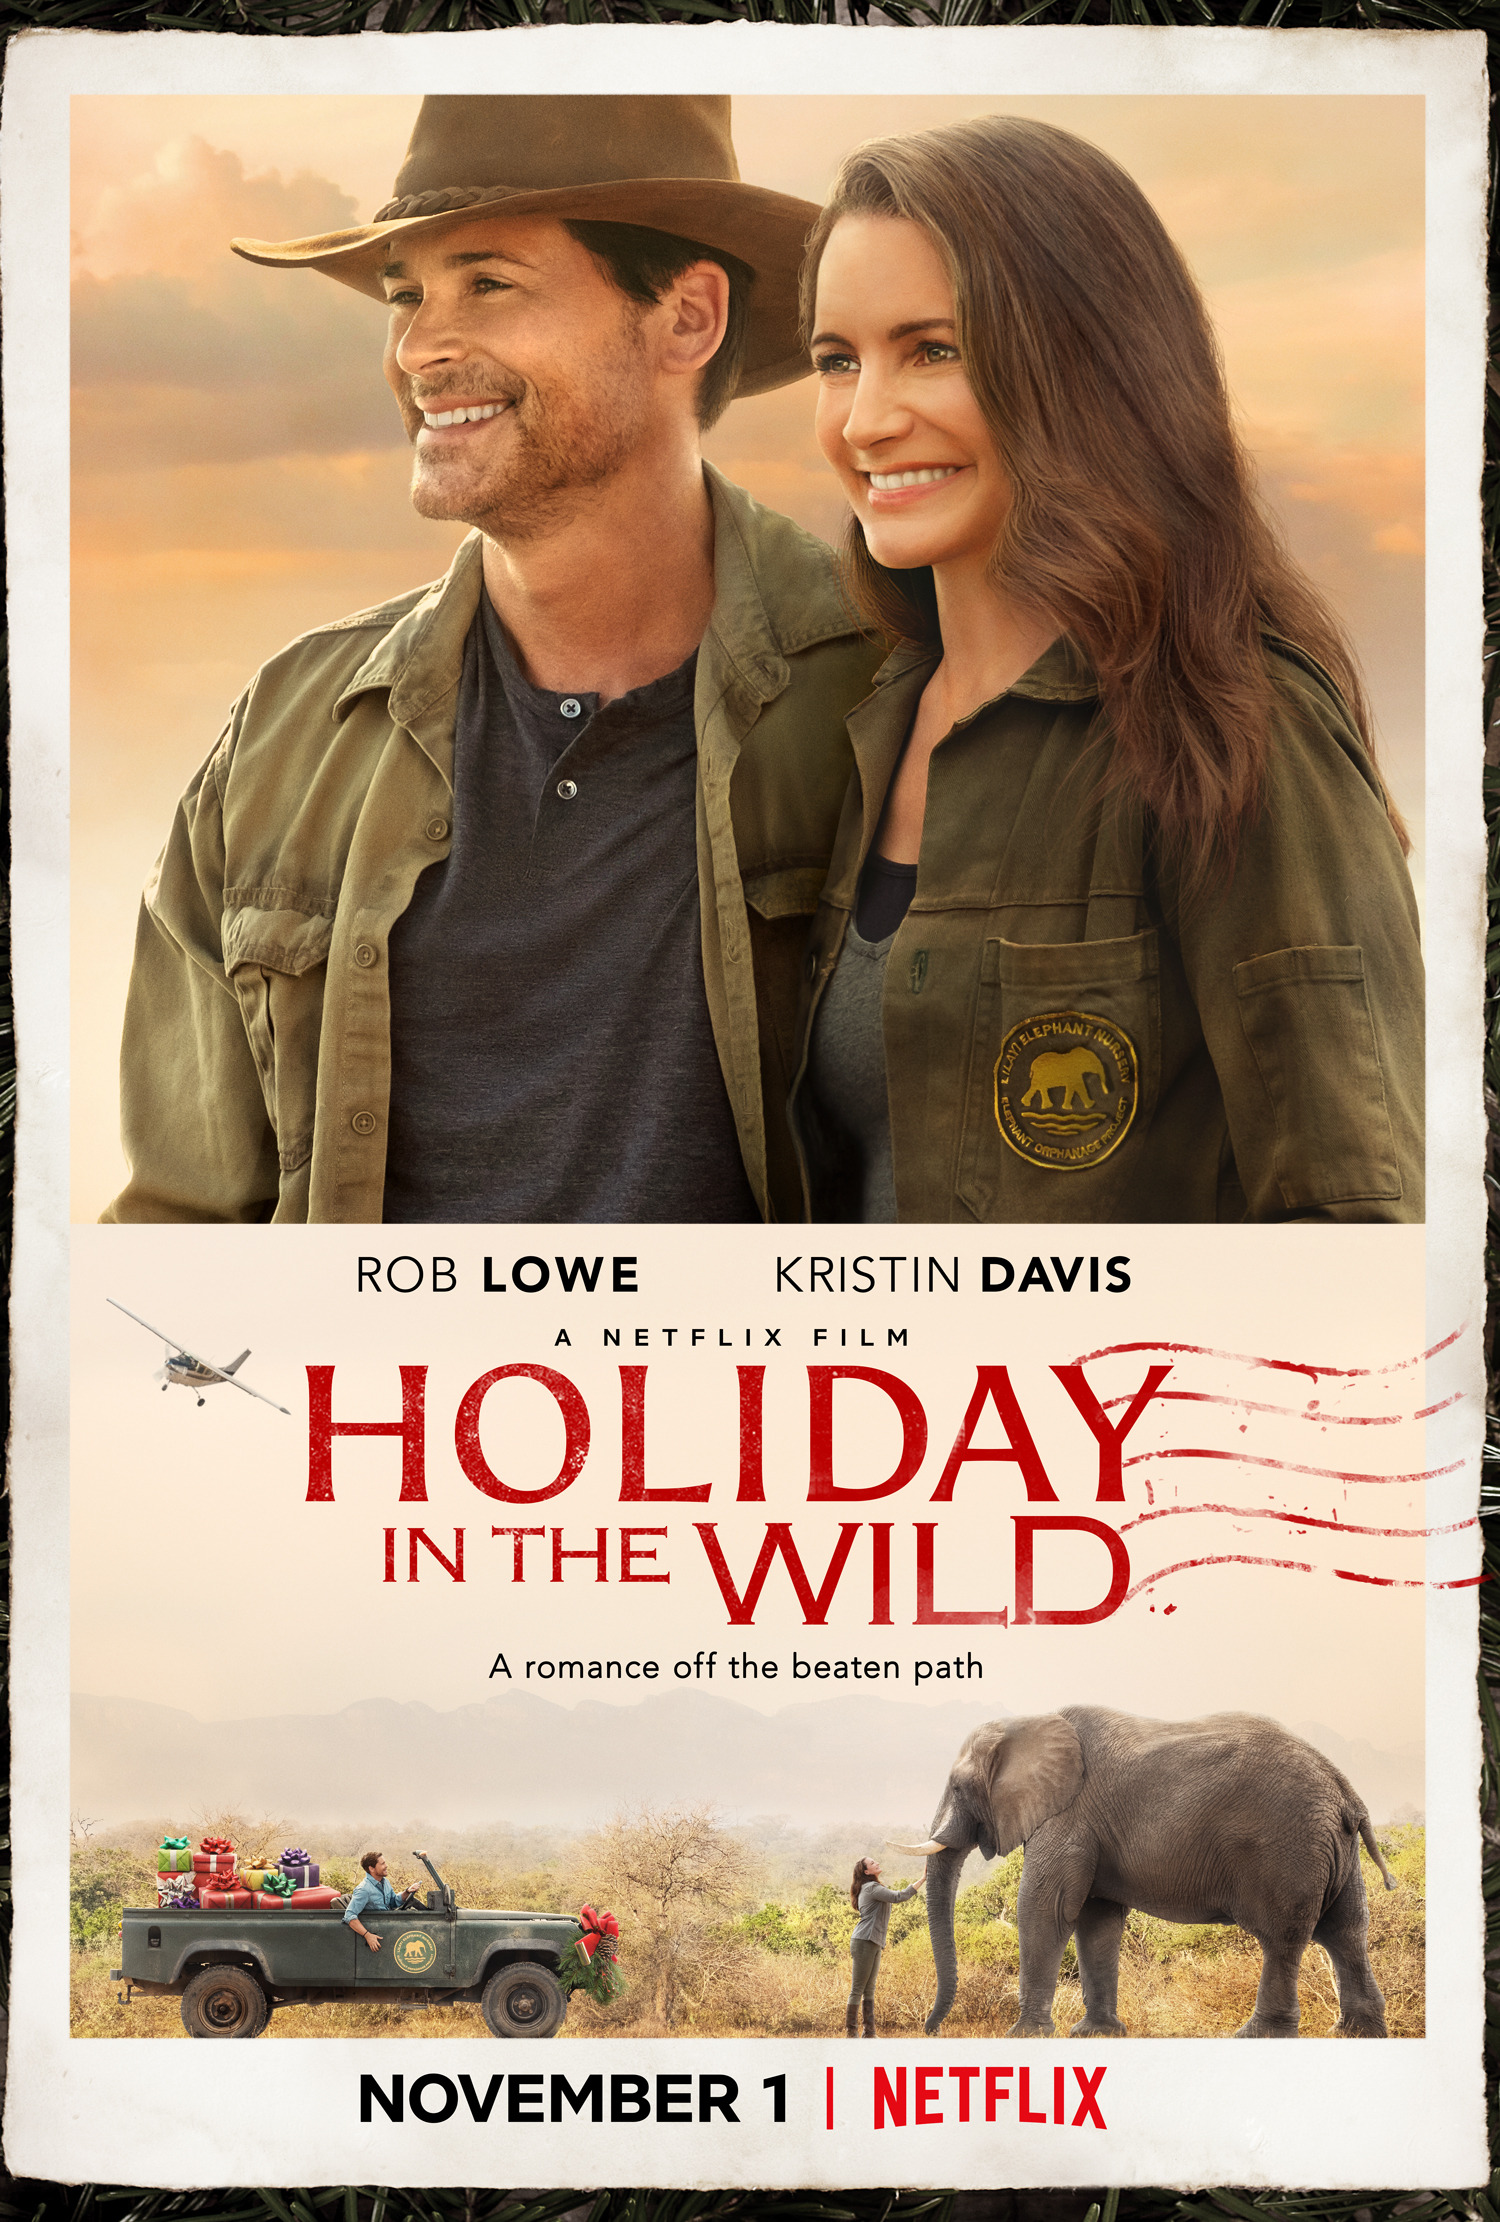 Holiday-In-The-Wild-2019-Netflix-Movie-Poster.jpg